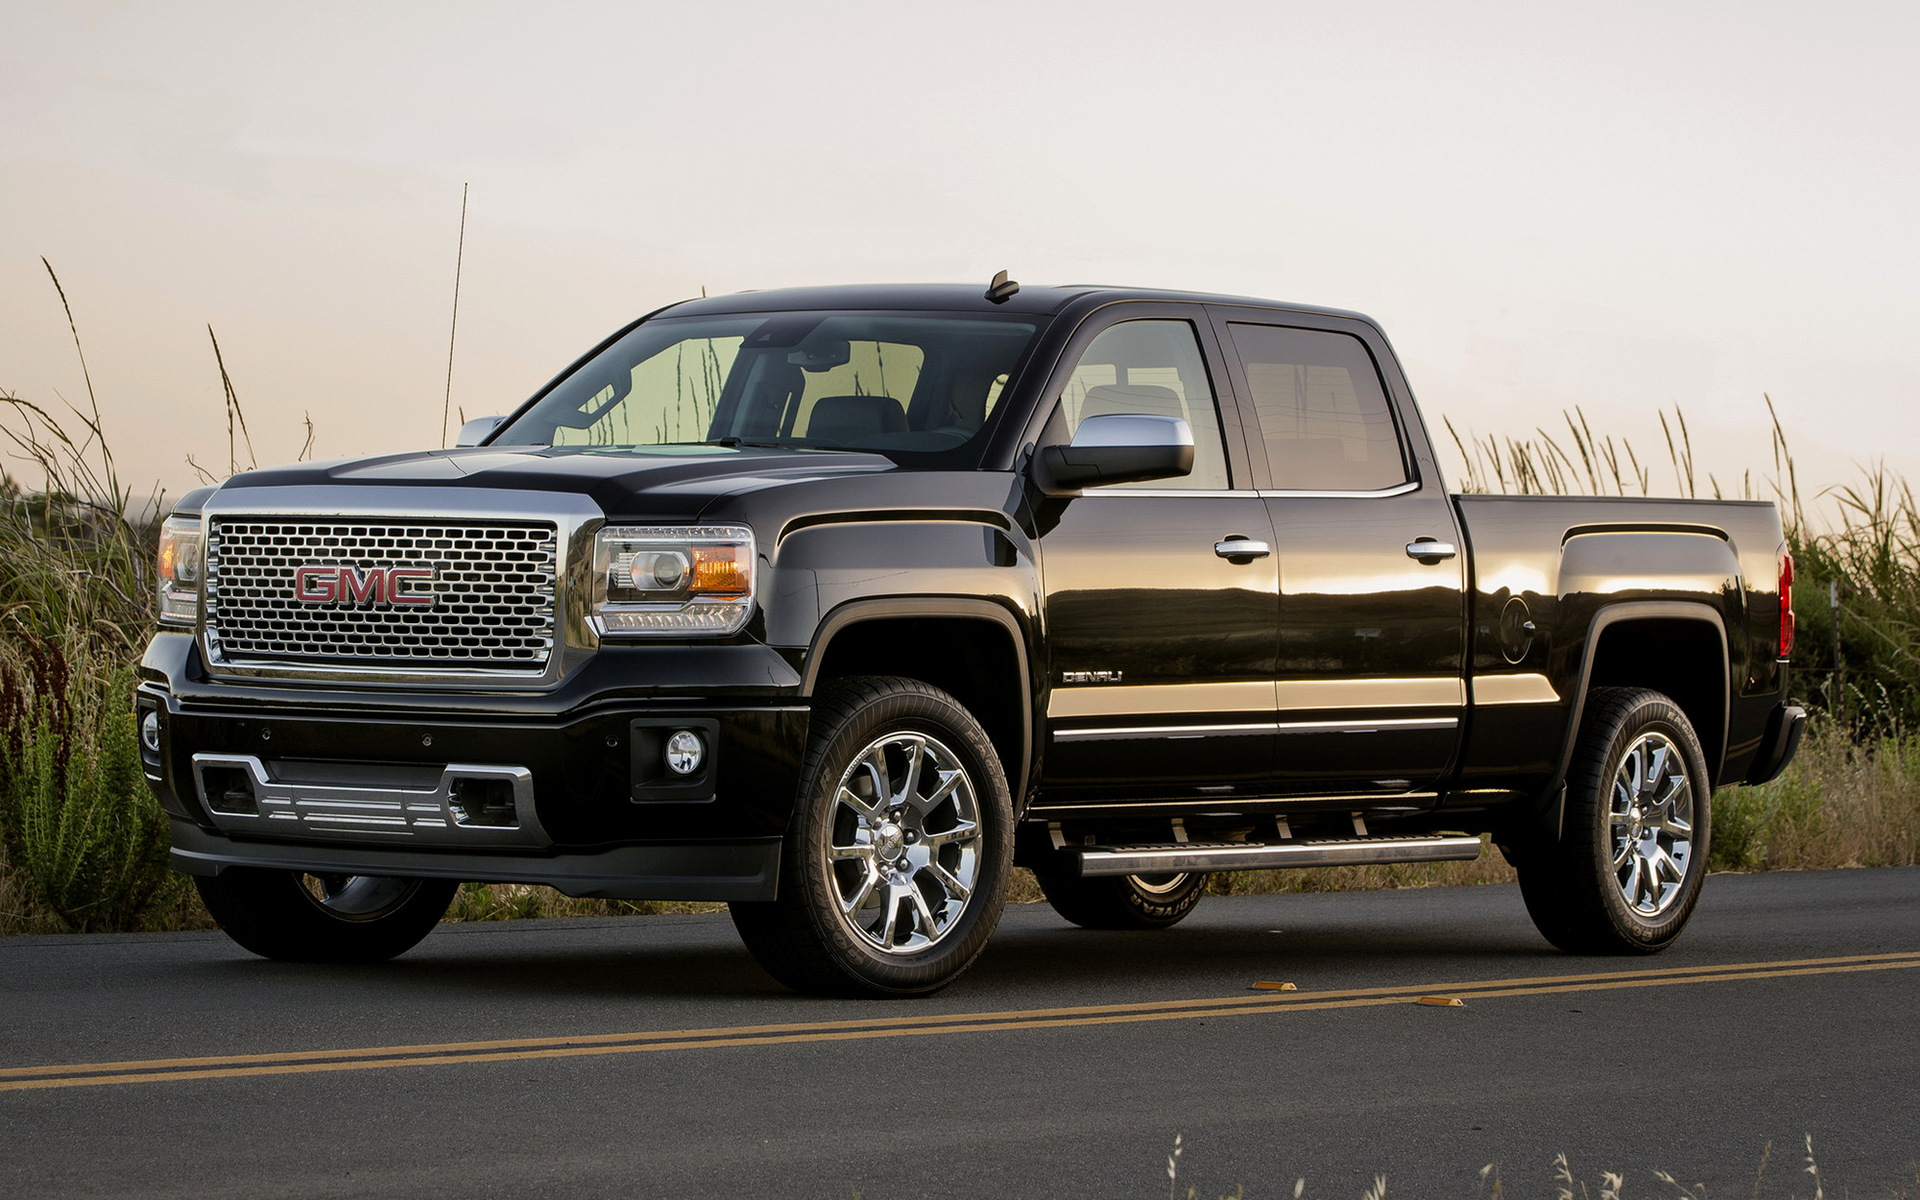 2014 GMC Sierra Denali 1500 Crew Cab - Wallpapers and HD ...